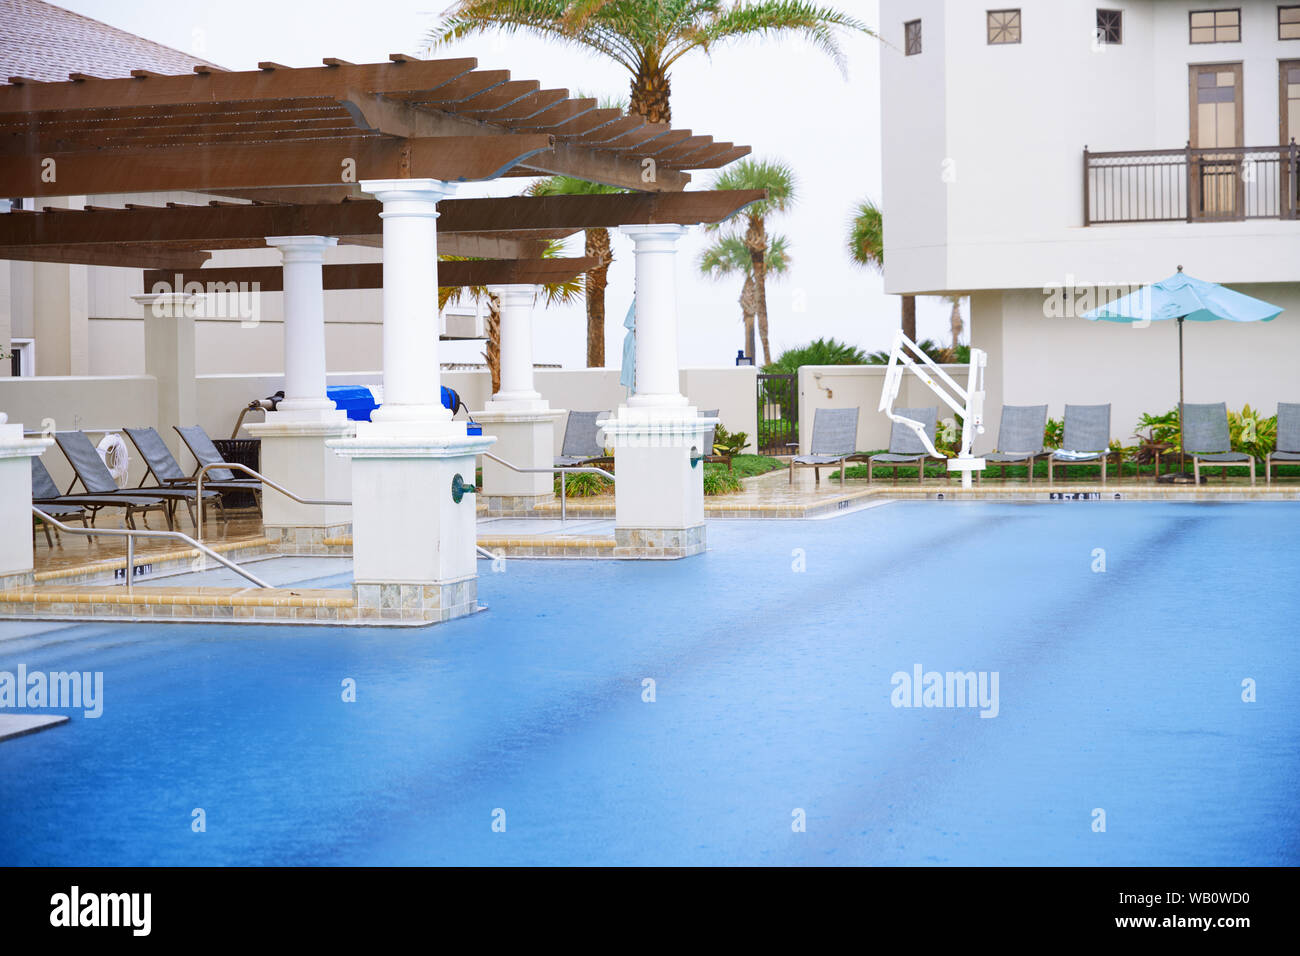 Swimming pool with lounge chairs Stock Photo